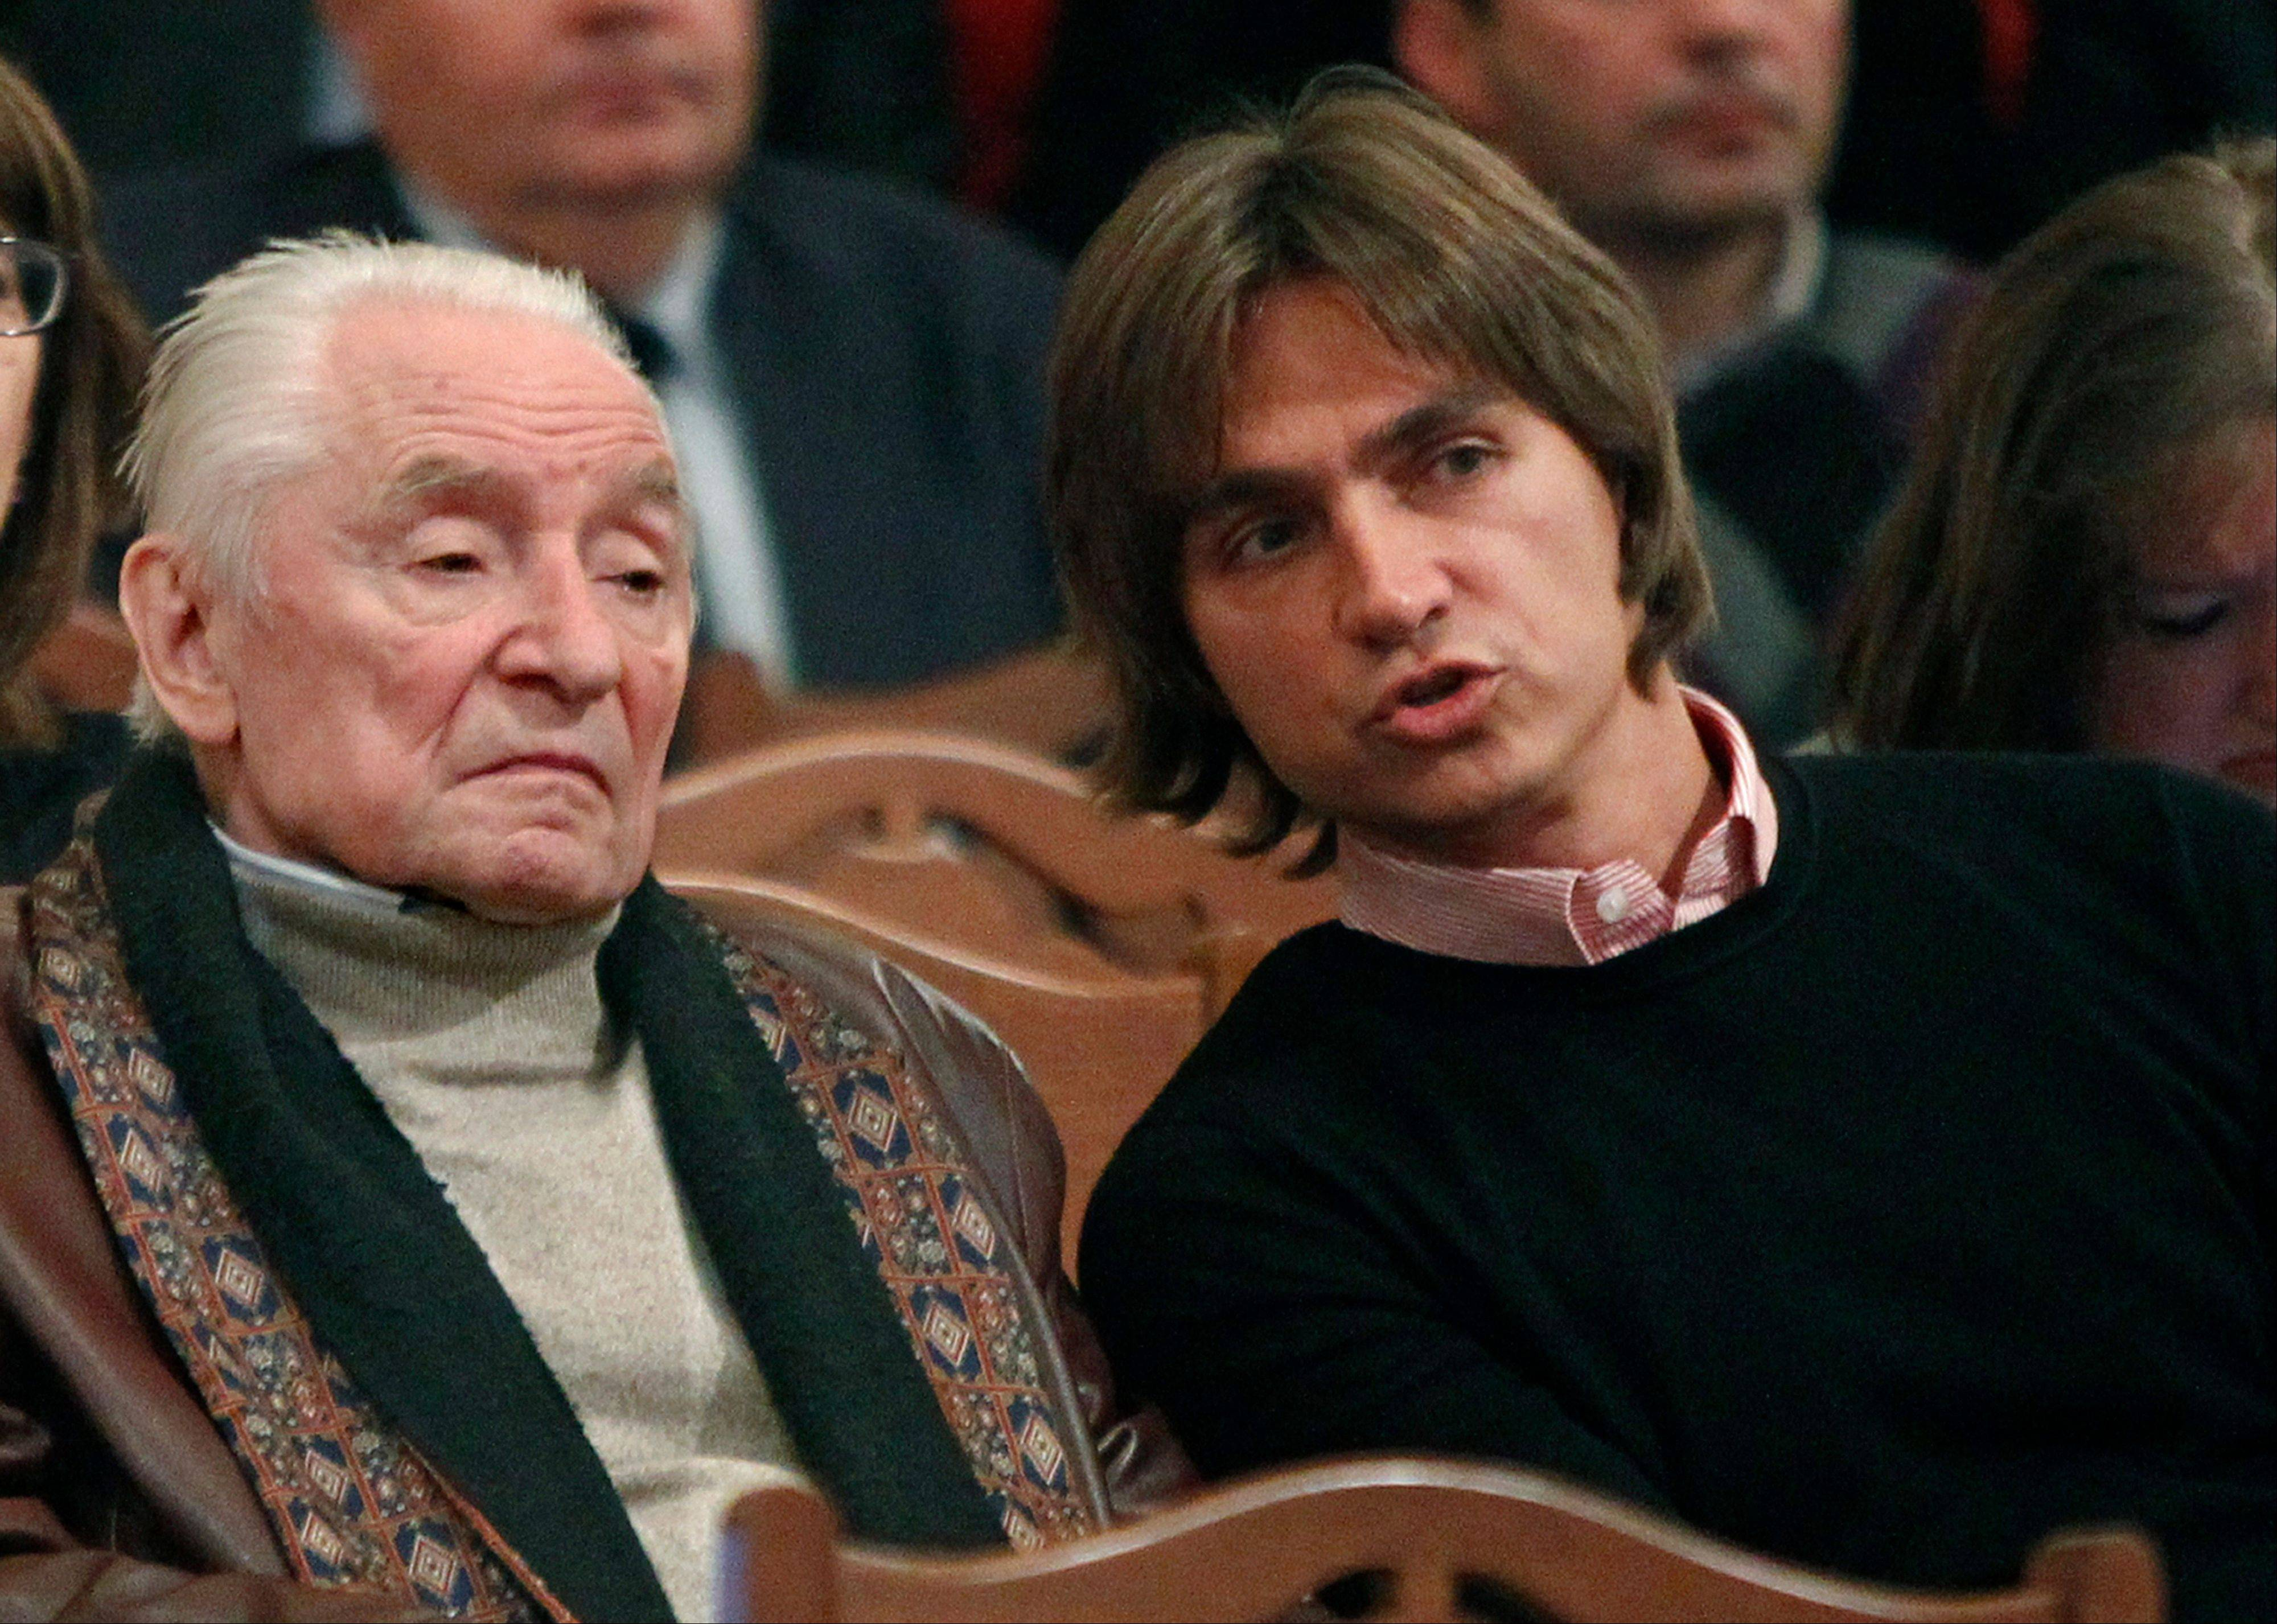 Moscow police said Friday, Jan. 18, 2013, that Sergei Filin, right, an artistic director at the legendary Bolshoi Theater, was attacked Thursday night by a man who splashed acid onto his face as the 43-year-old former dancer came out of his car outside his home in central Moscow.